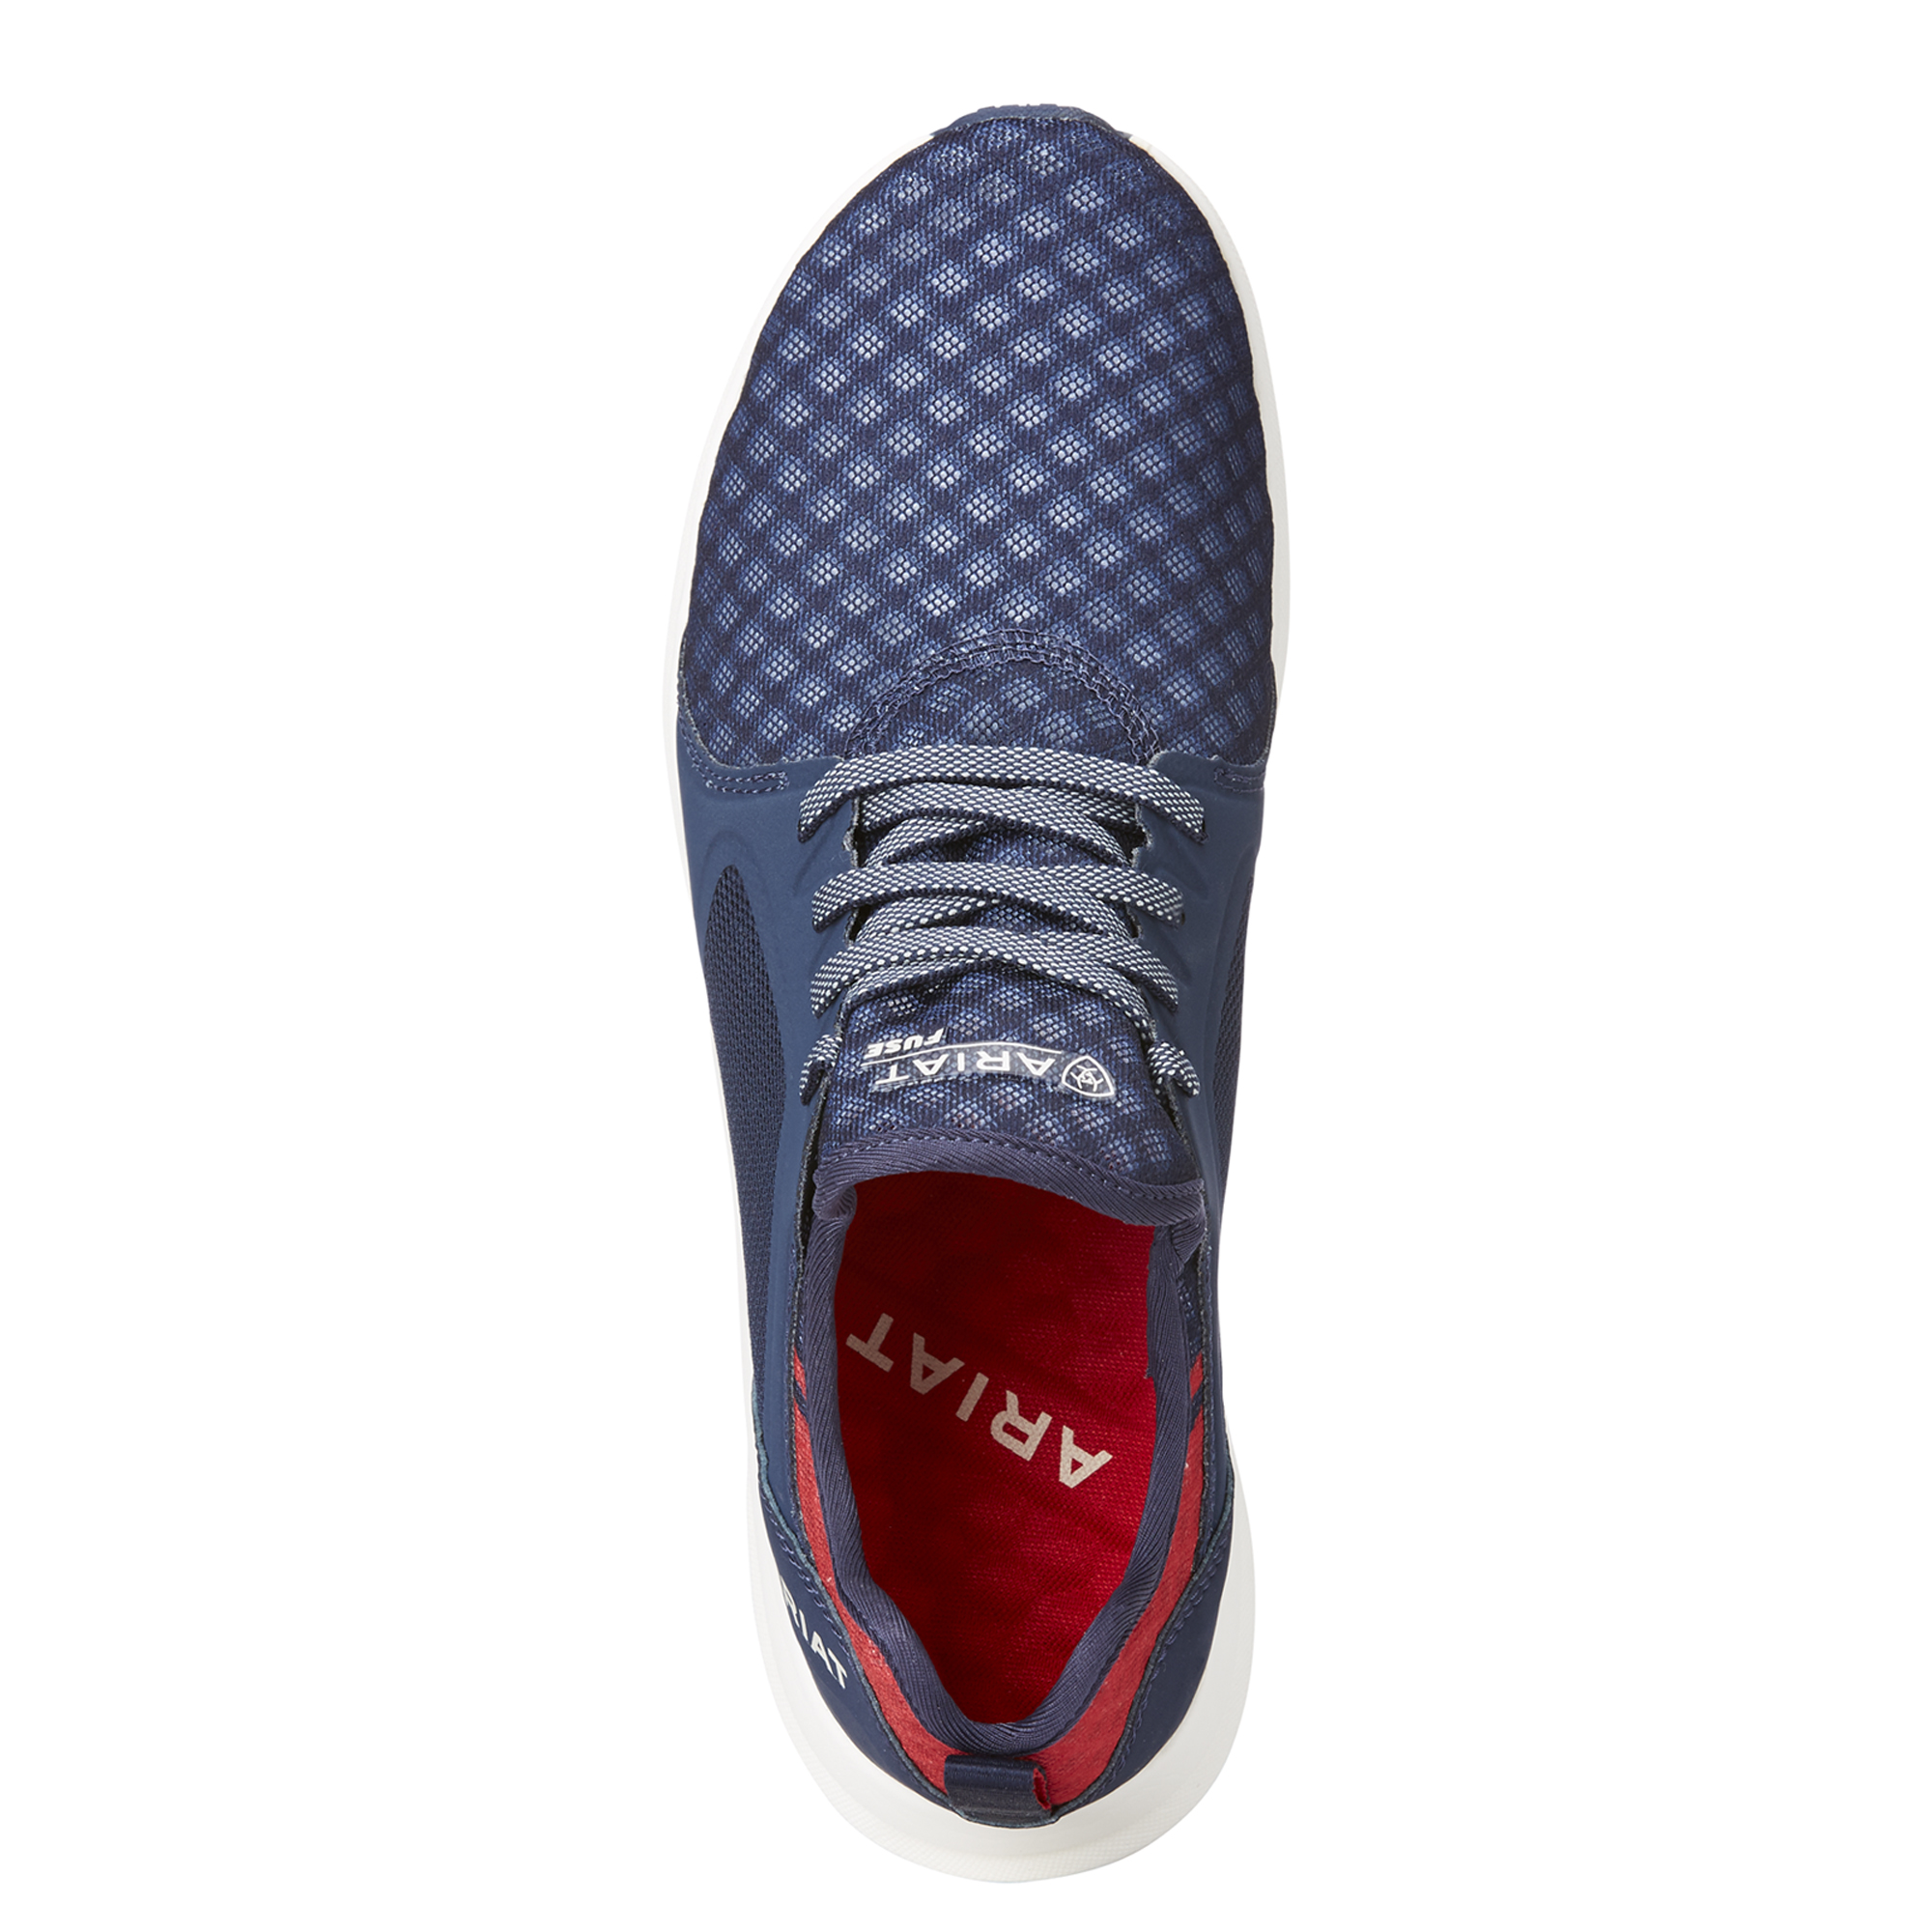 Ariat Fuse Womens Mesh Trainers Navy Blue